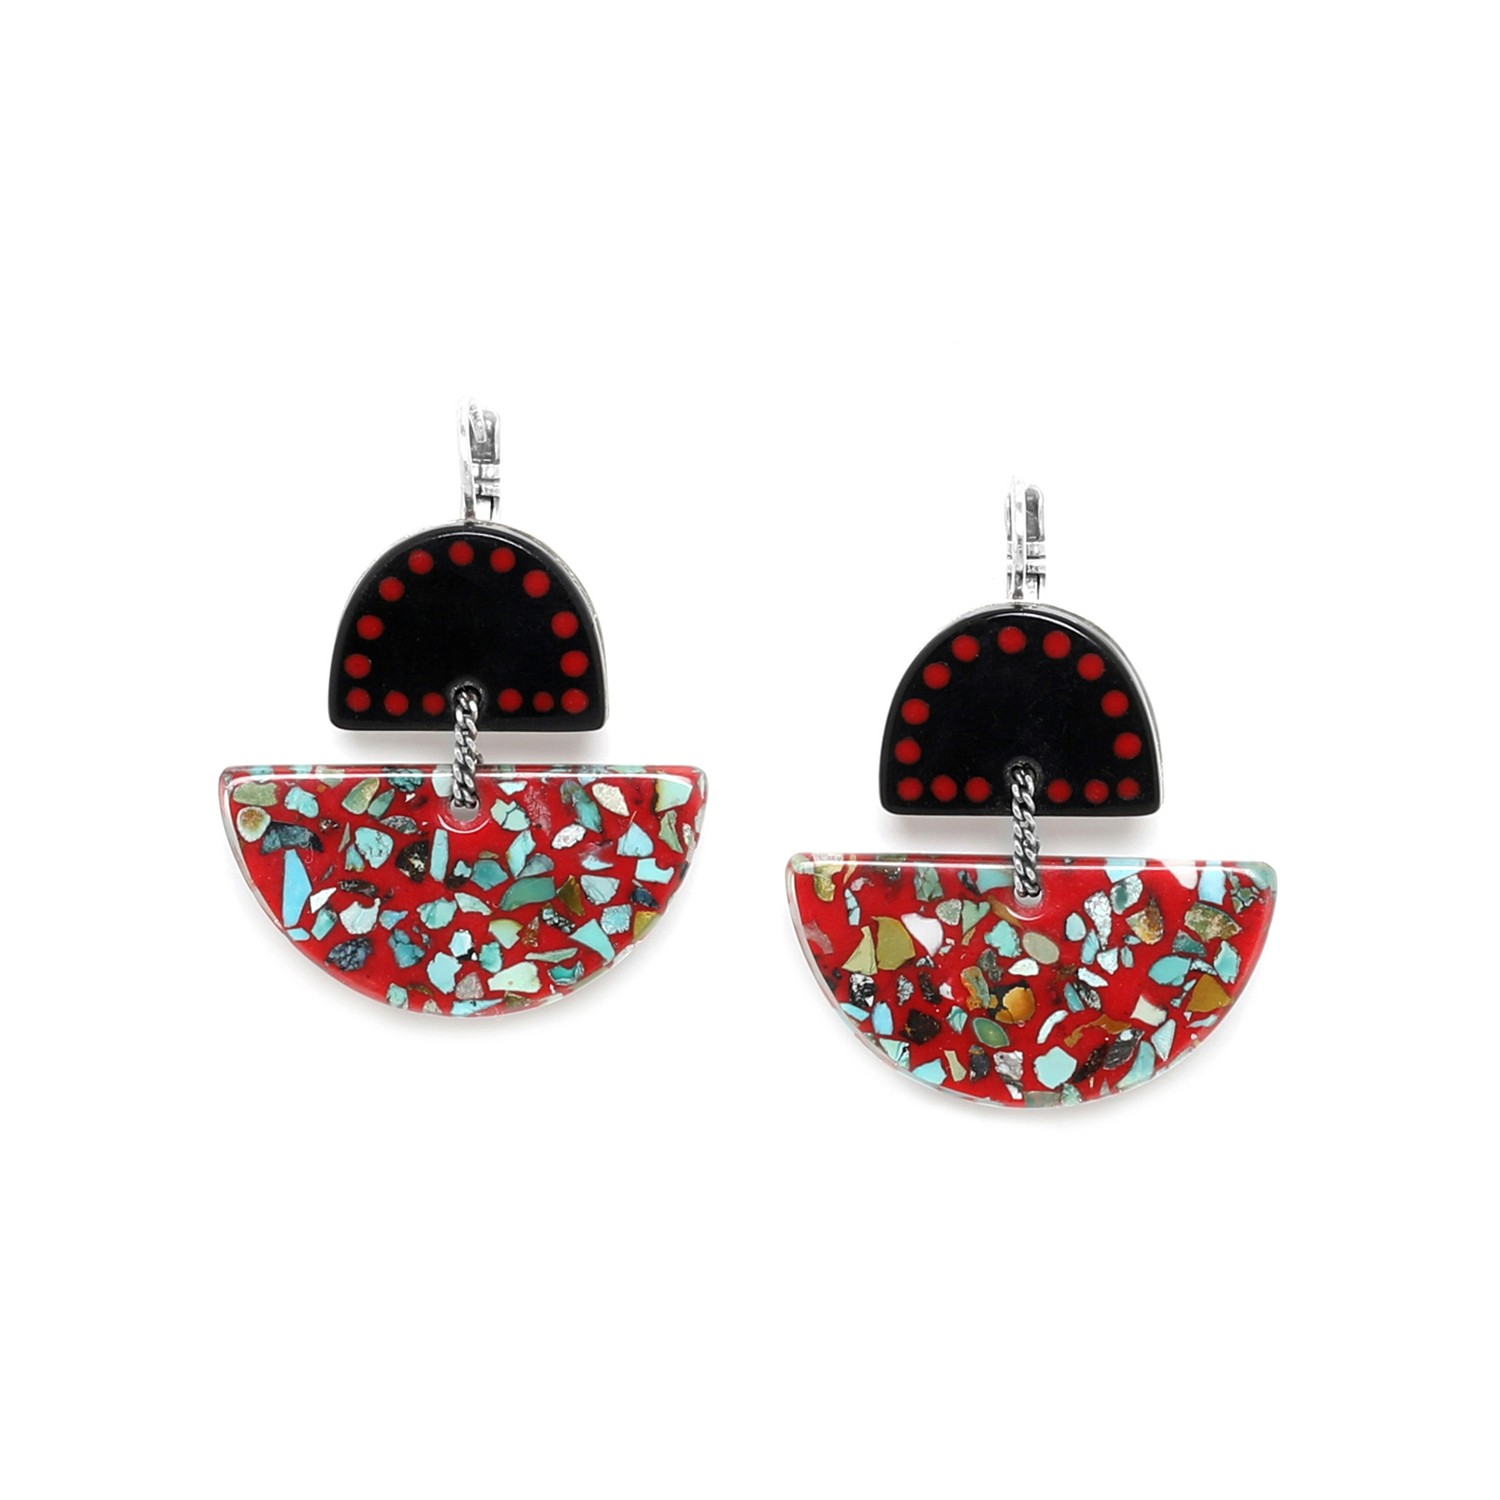 SAGARMATHA half moon hook earrings